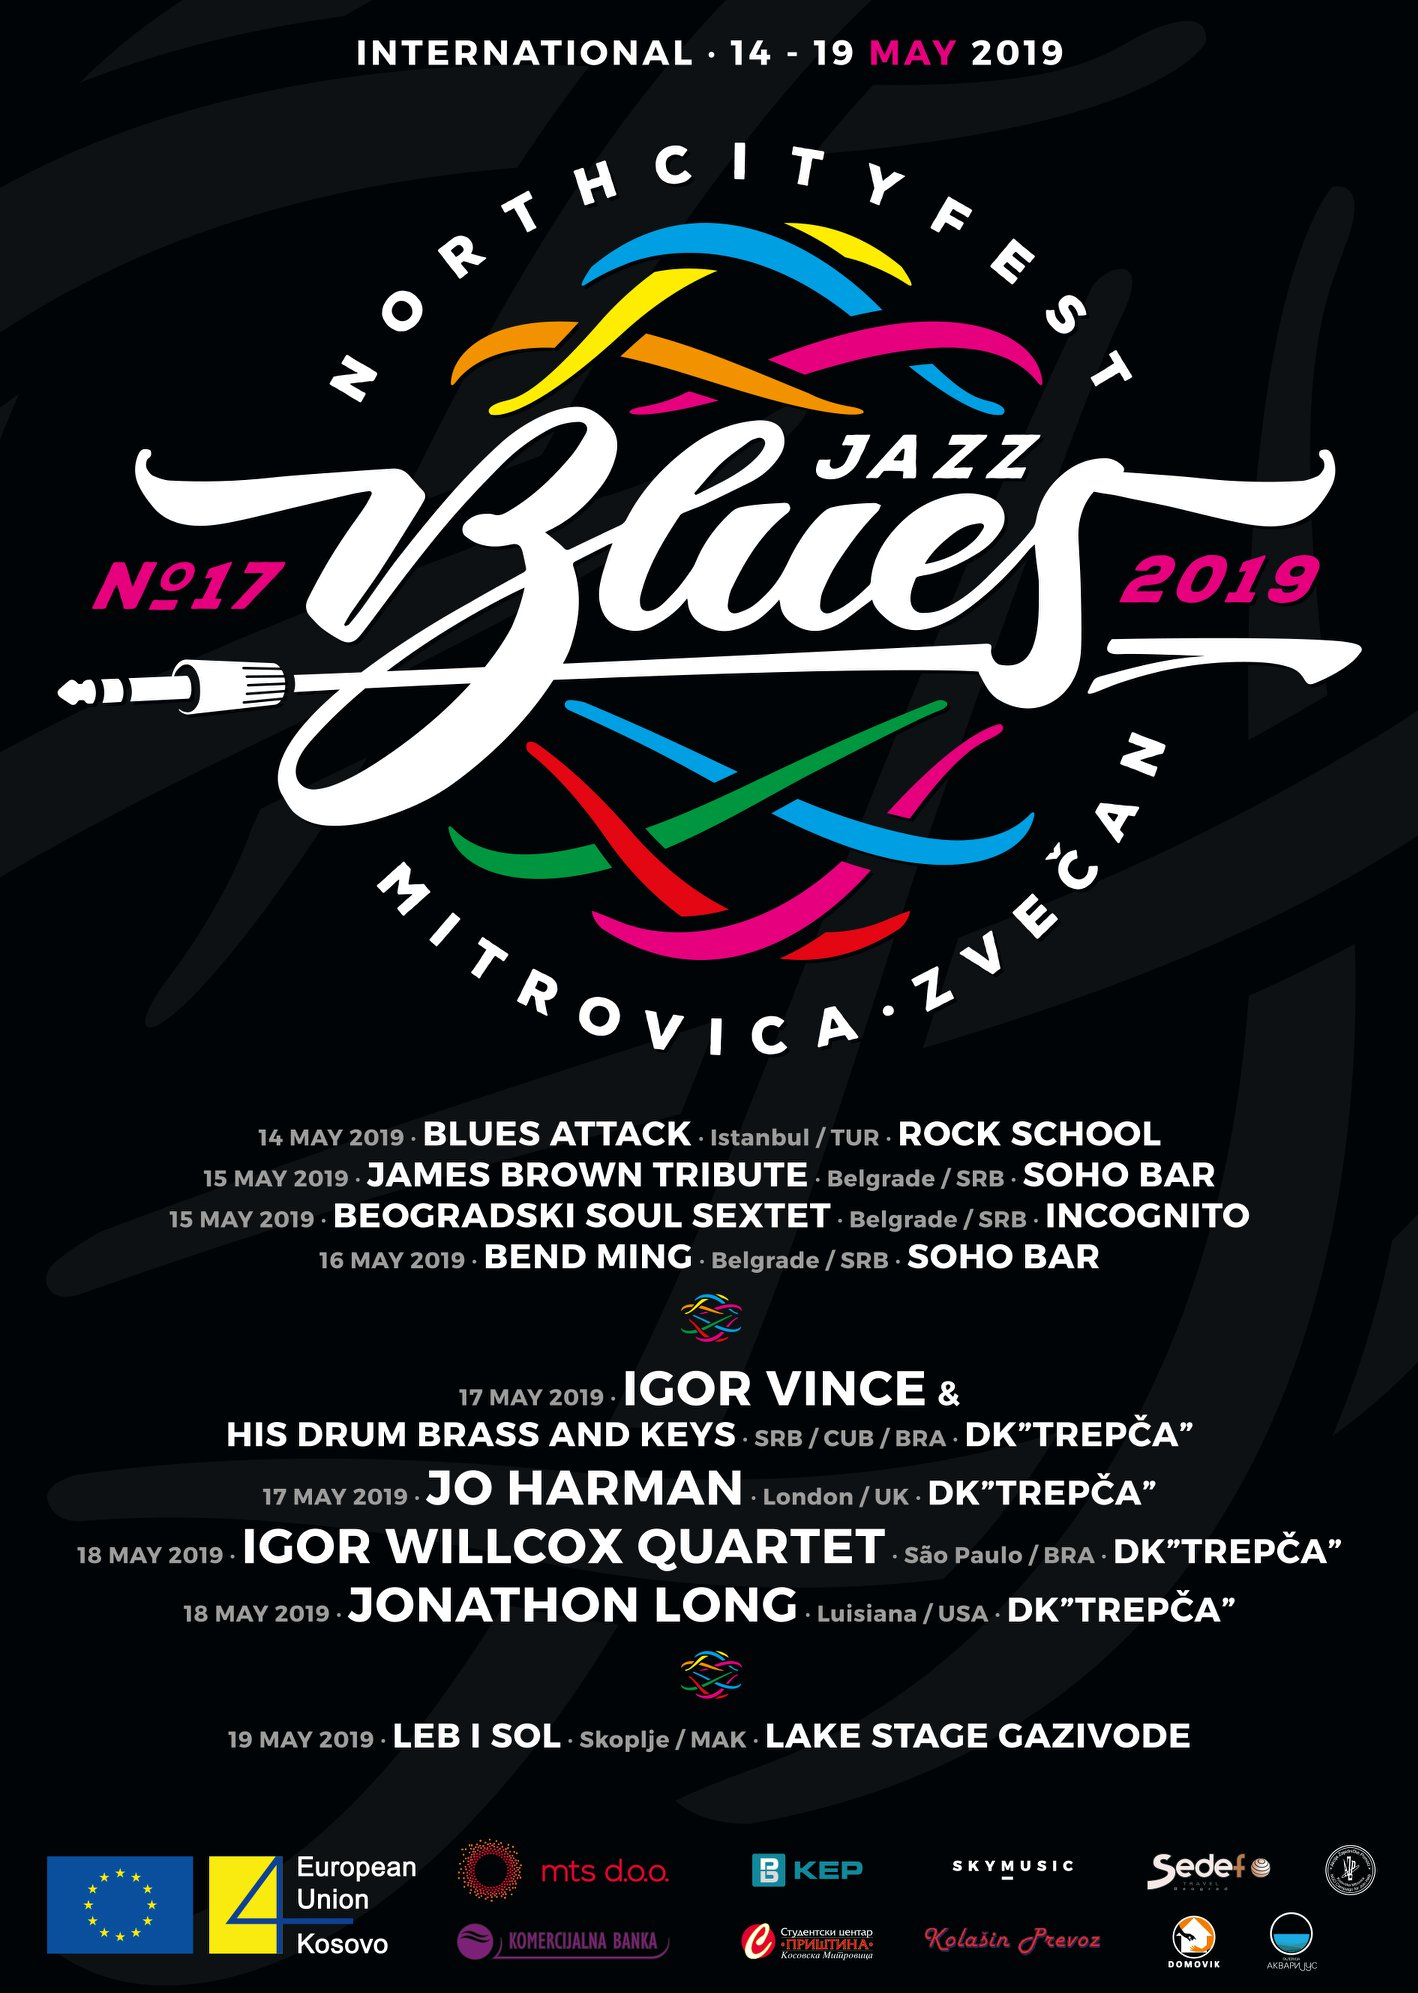 North City Jazz & Blues Festival - Kosovska Mitrovica